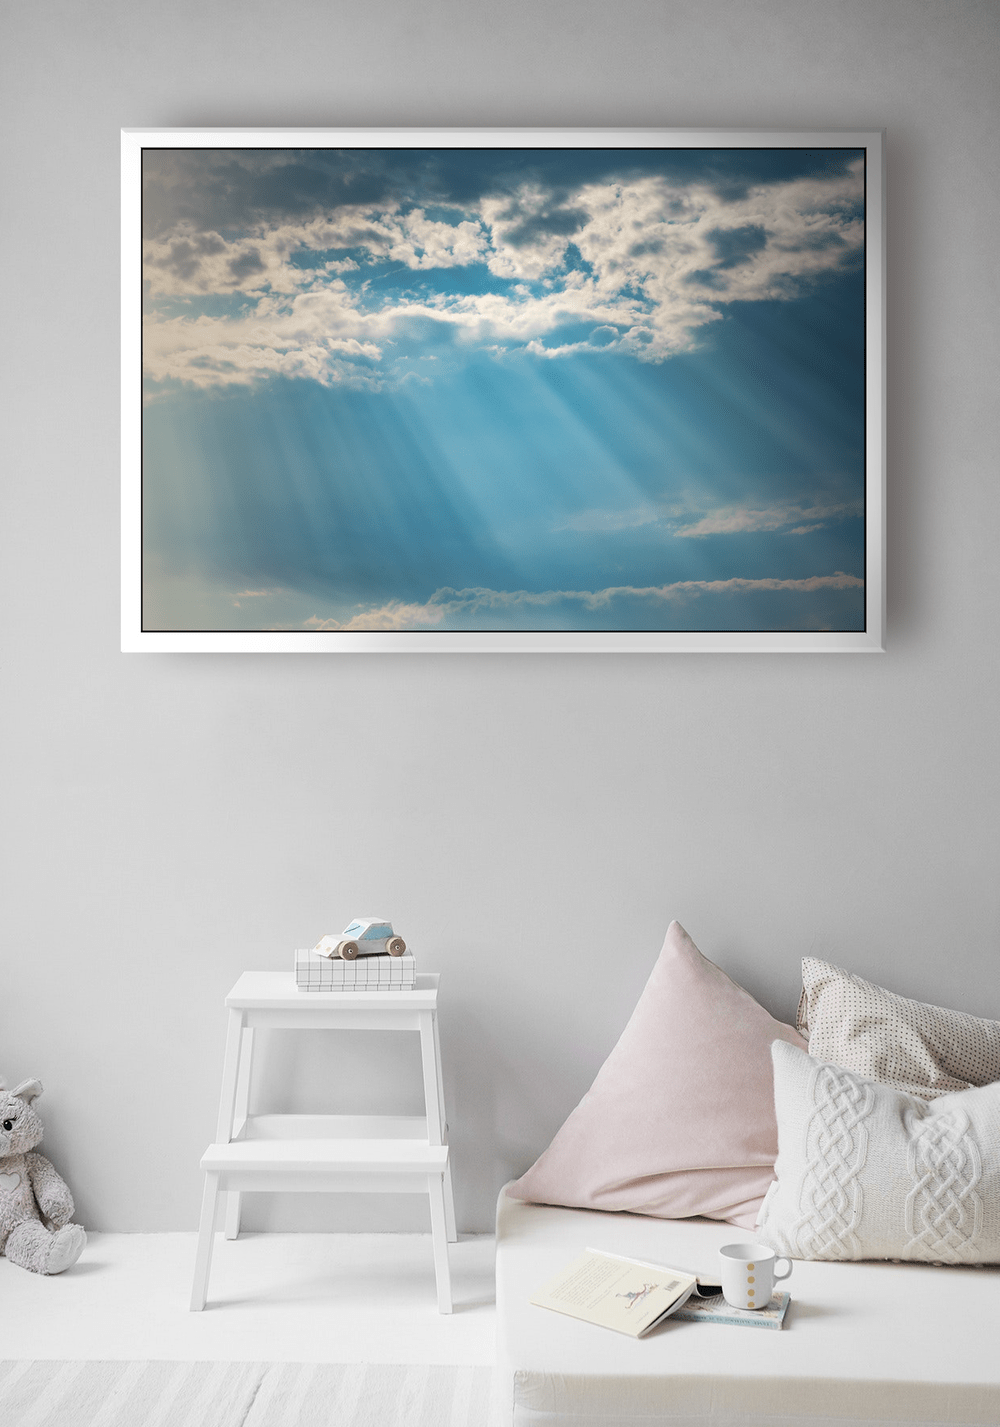 the final canvas image displaying a sunset sky hanging in a bedroom